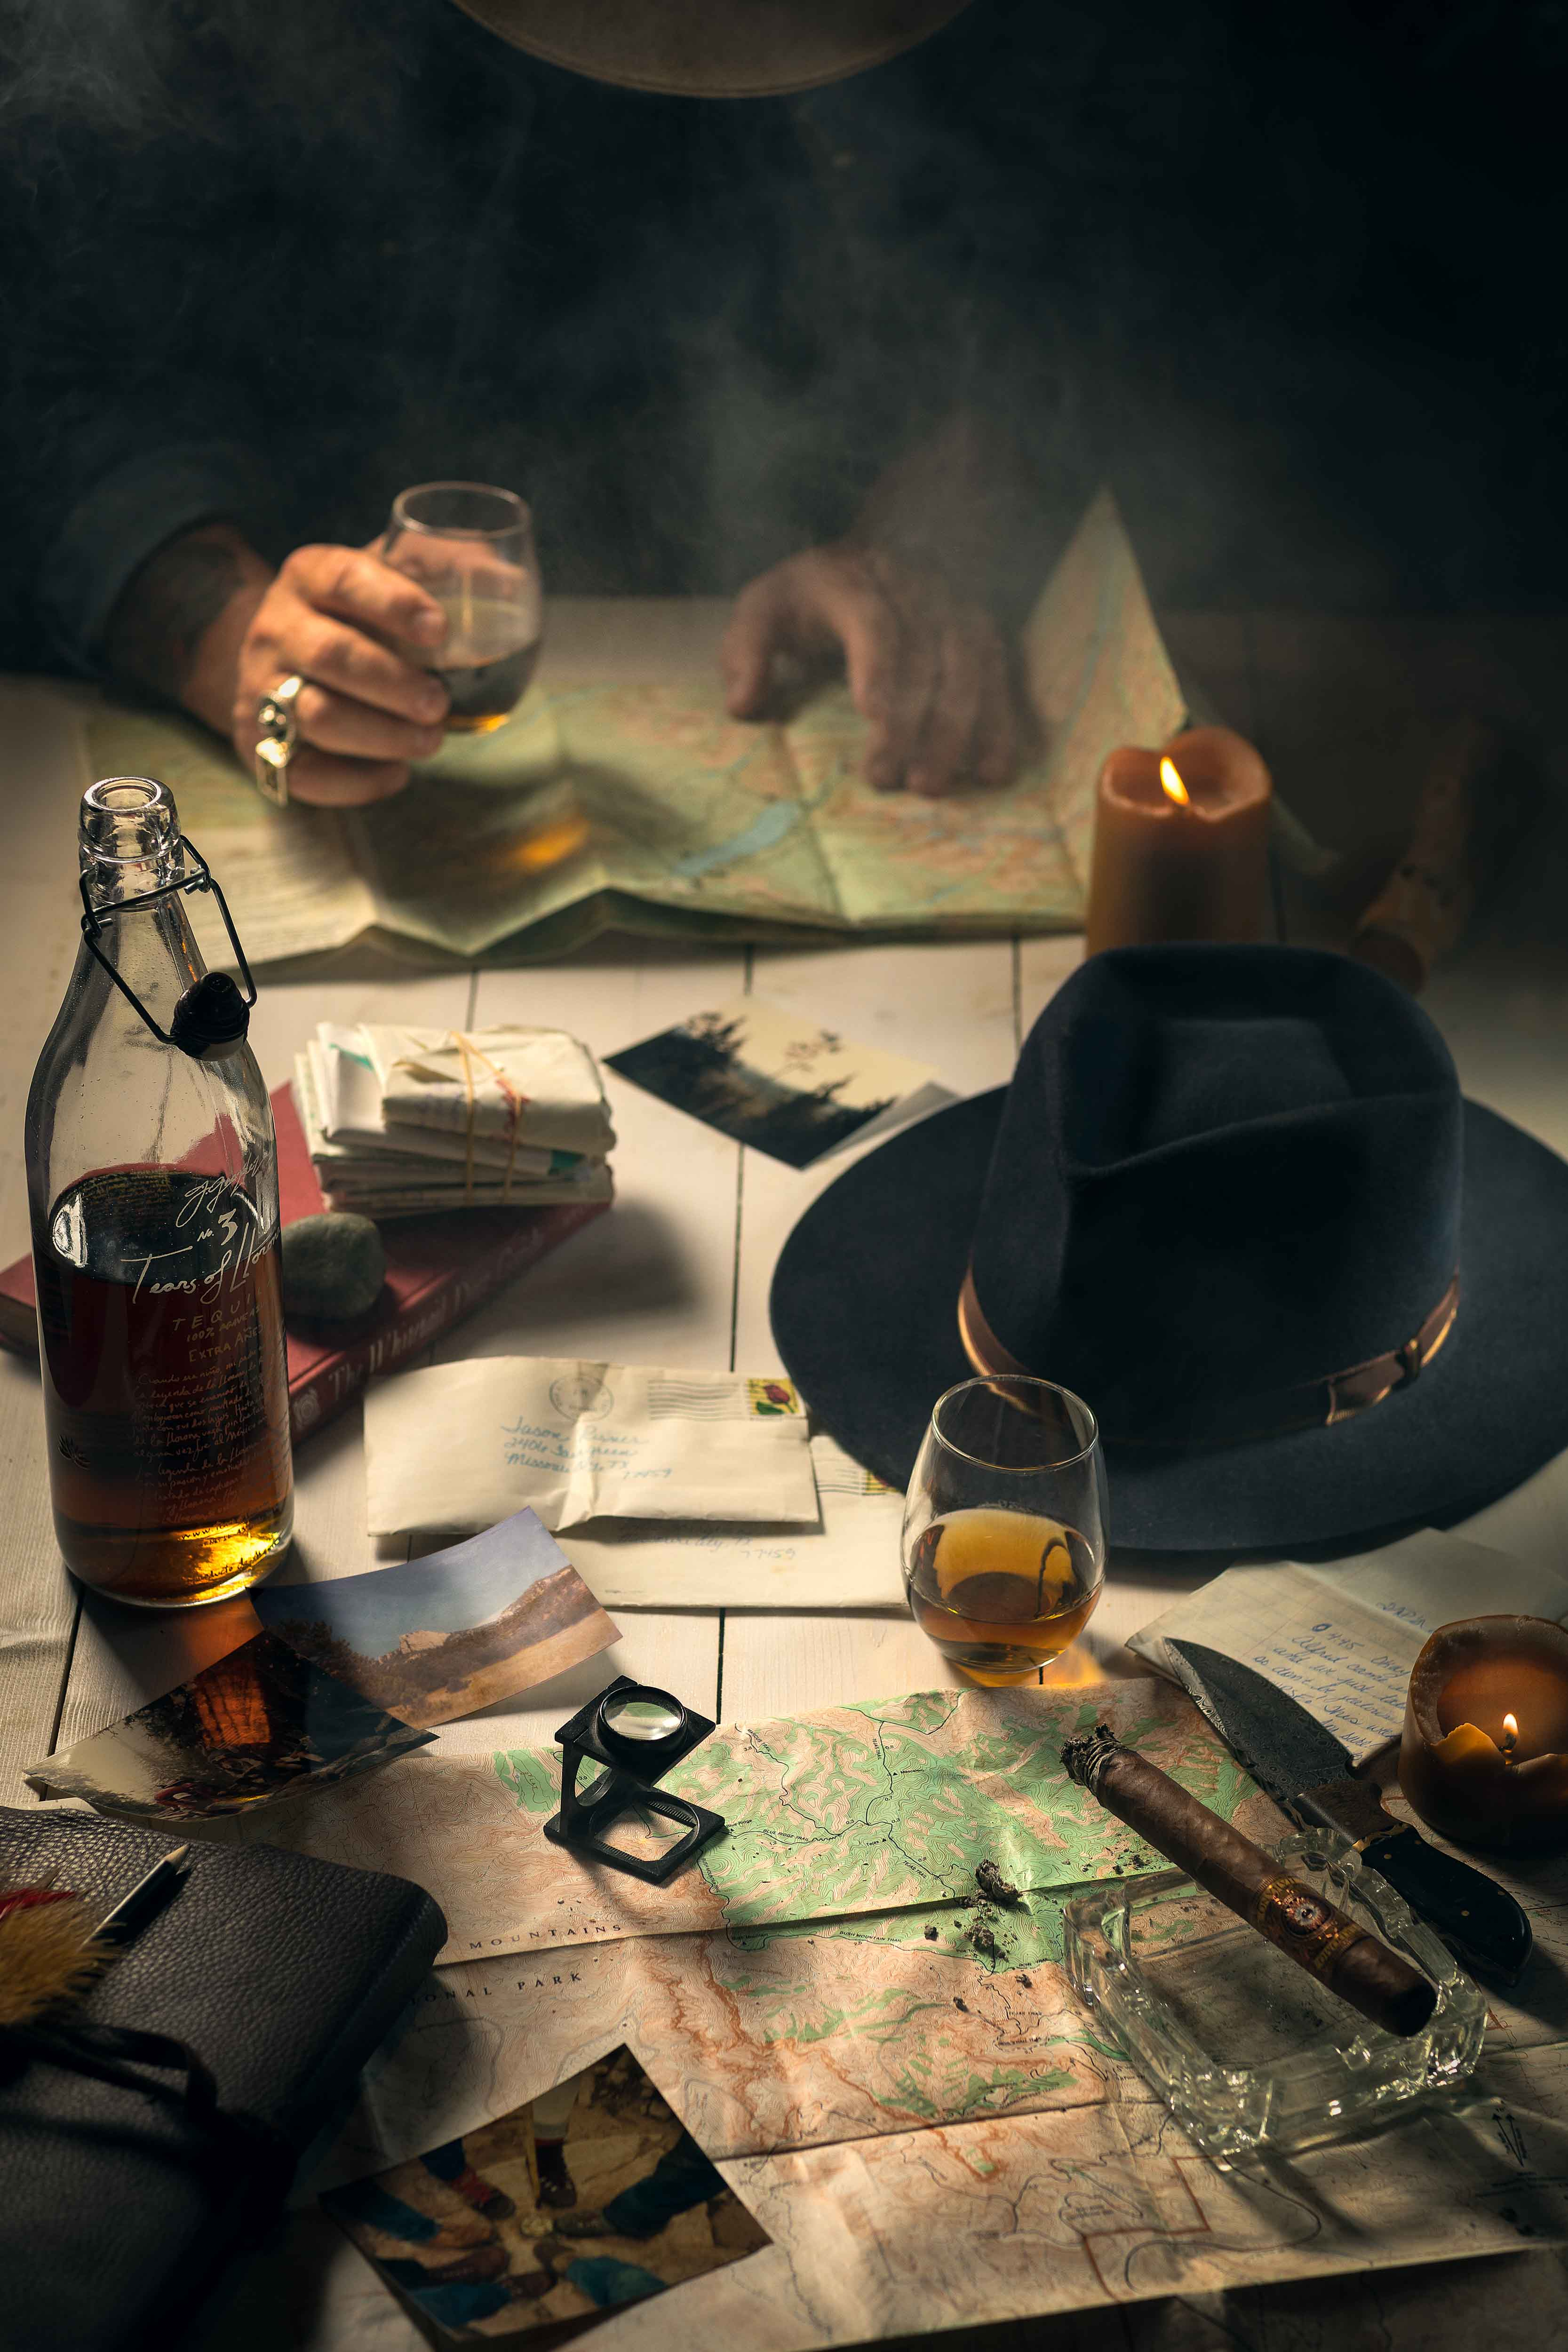 Jason Risner Lifestyle Photo of Hat Cigar and Tequila on Table